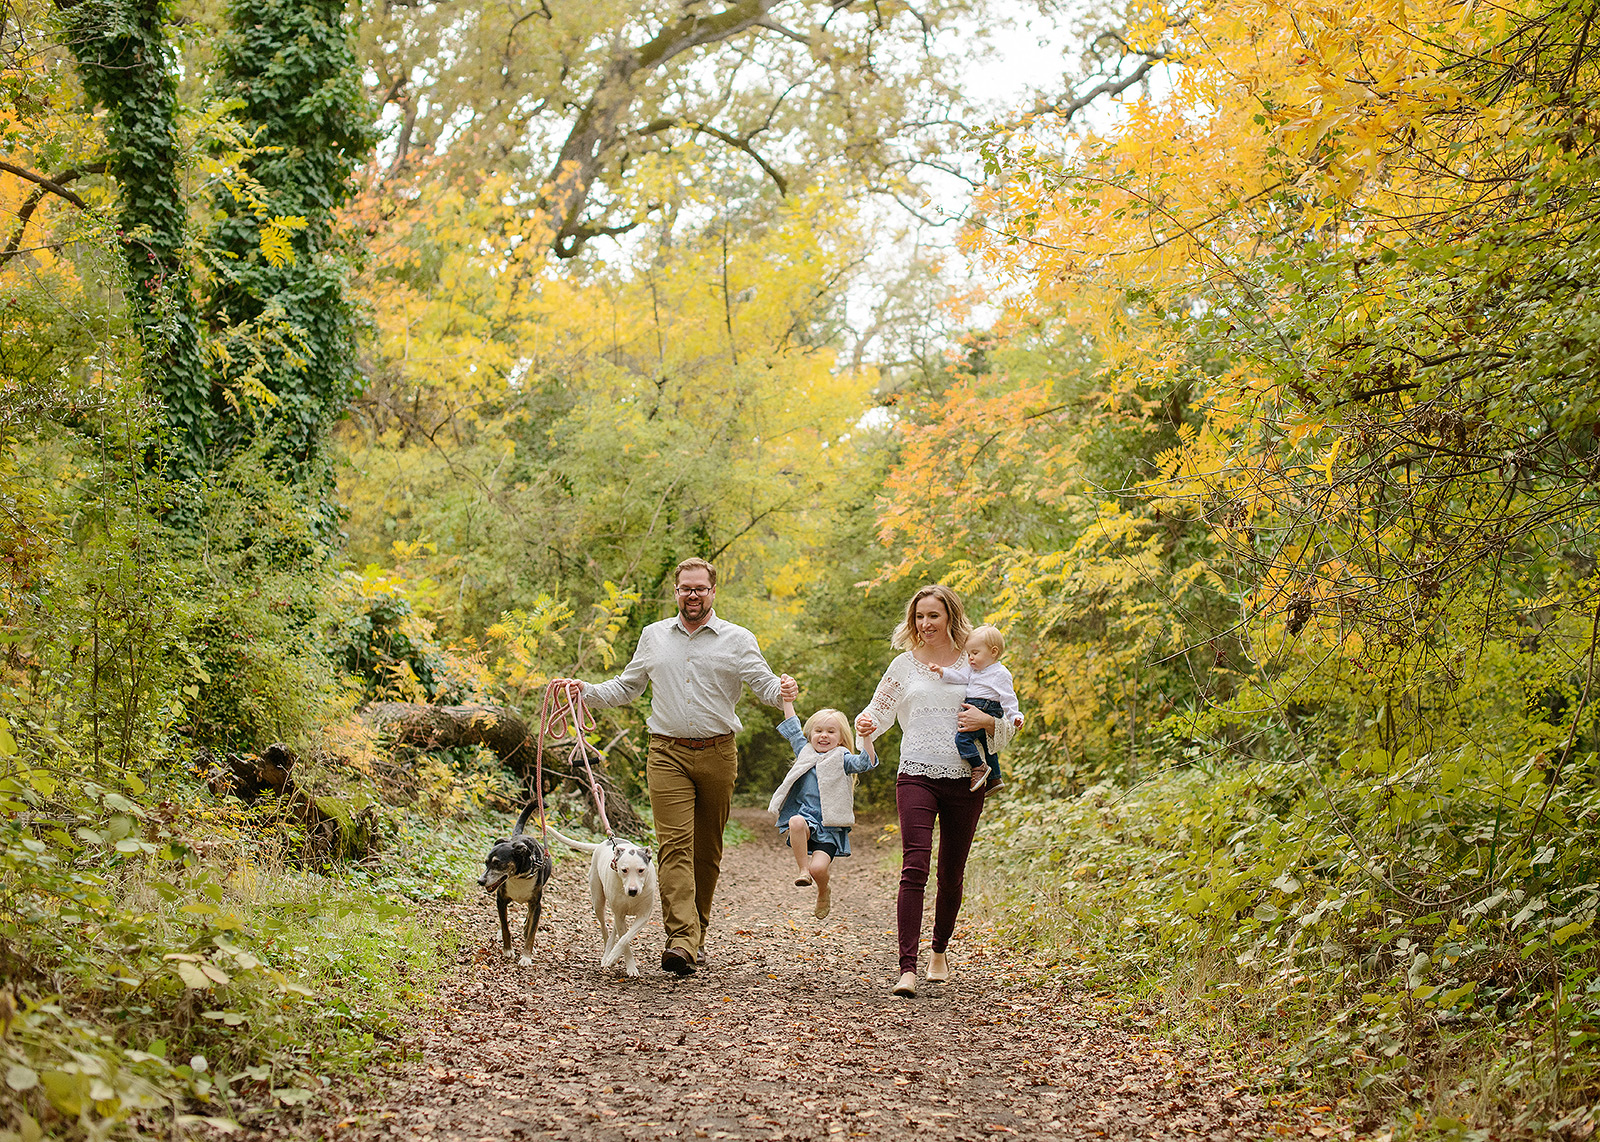 Family Portrait in Chico with Dogs in Tree Foliage Background